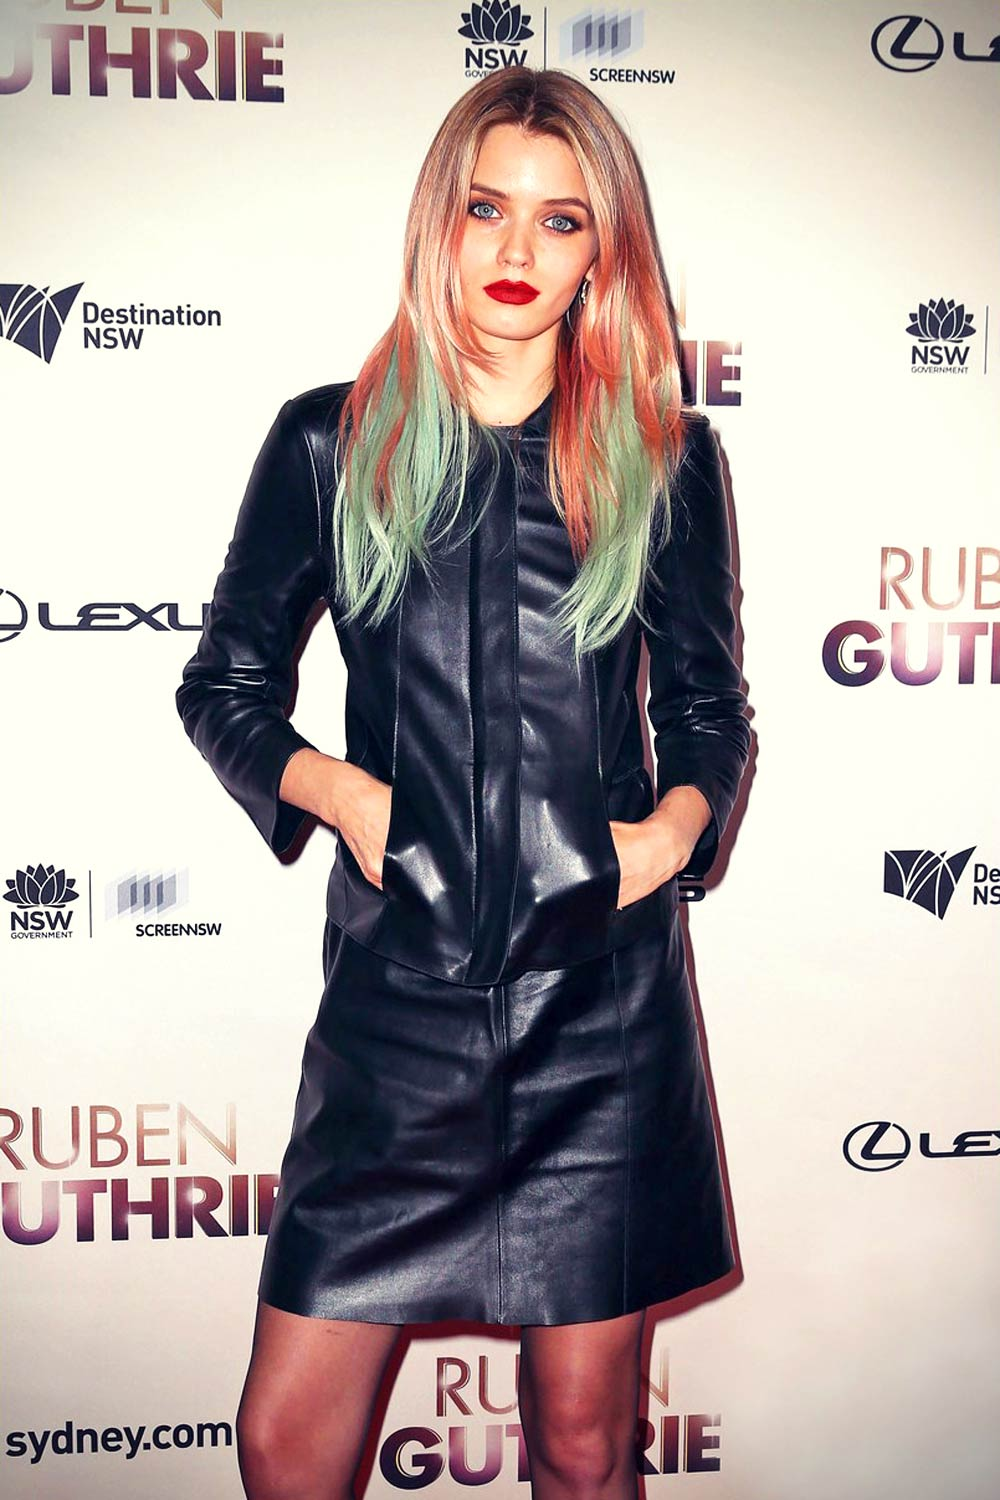 Abbey Lee Kershaw attends the The Ritz screening